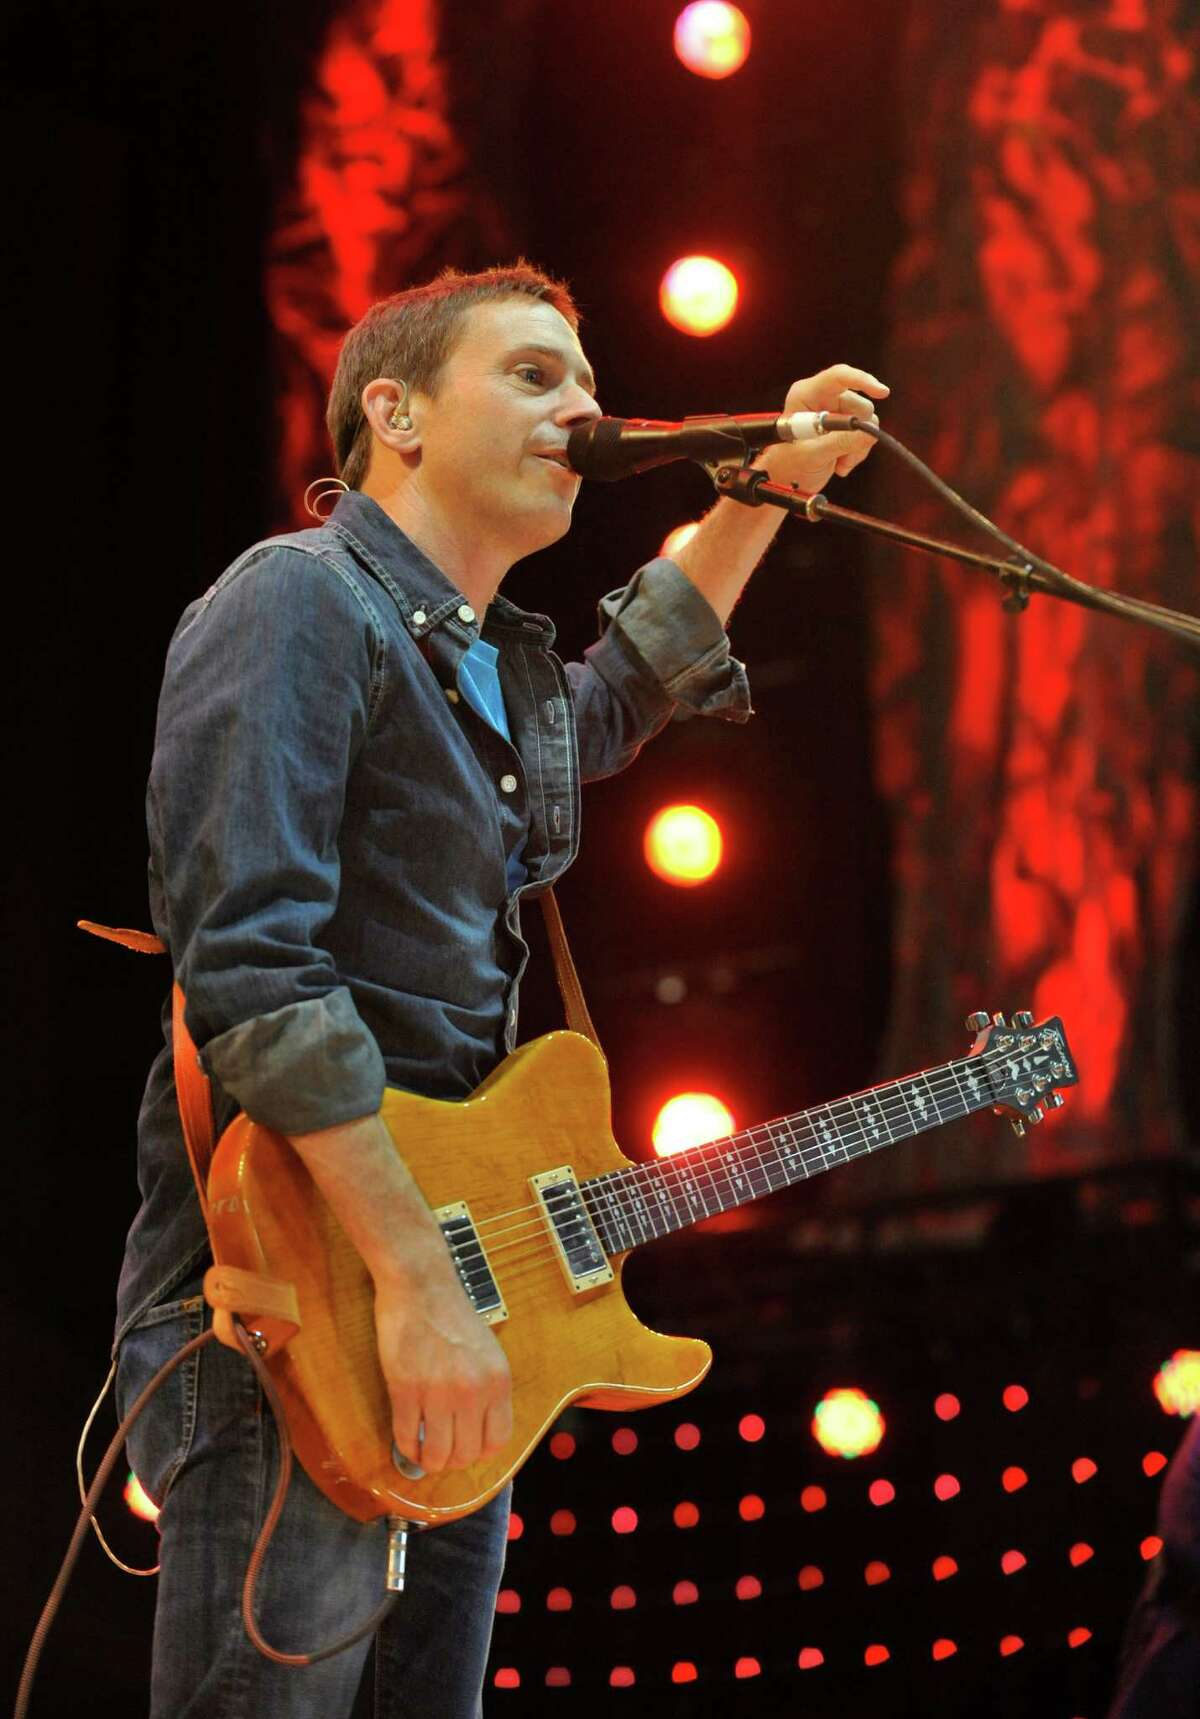 Glen Phillips of Toad the Wet Sprocket performs during the Farm Aid 2013 concert at Saratoga Performing Arts Center in Saratoga Springs, N.Y., Saturday, Sept. 21, 2013.(AP Photo/Hans Pennink) ORG XMIT: NYHP128